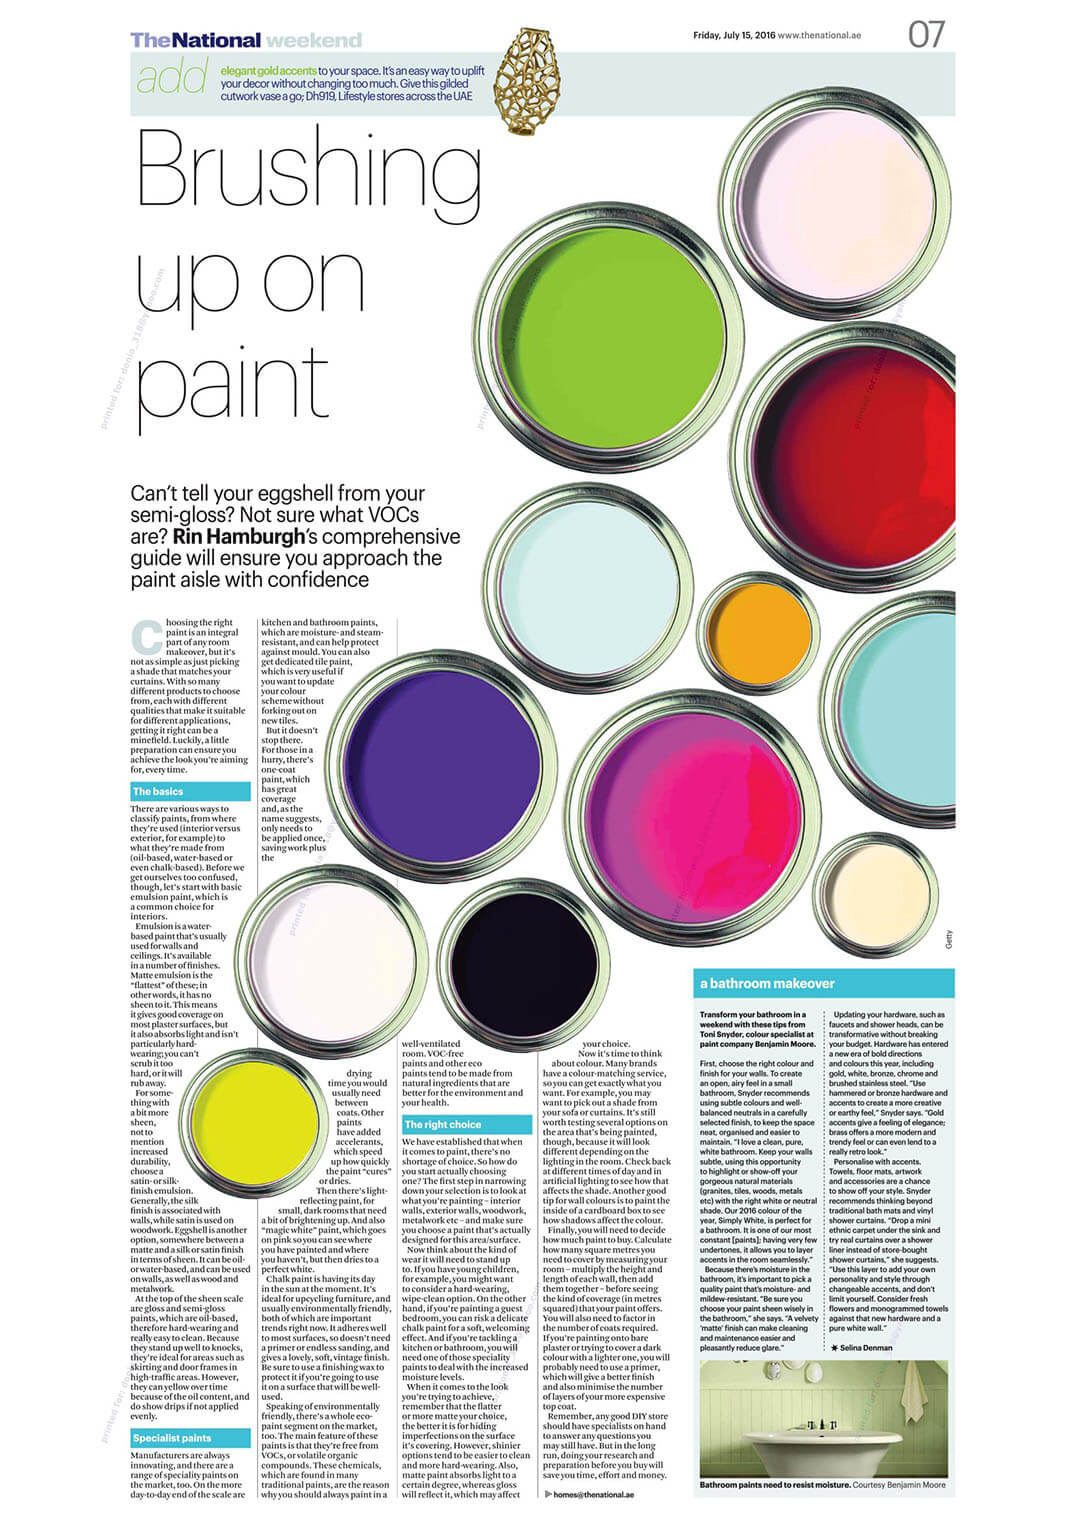 Benjamin Moore - The National - Weekend - 15 July 2016 - Page 7